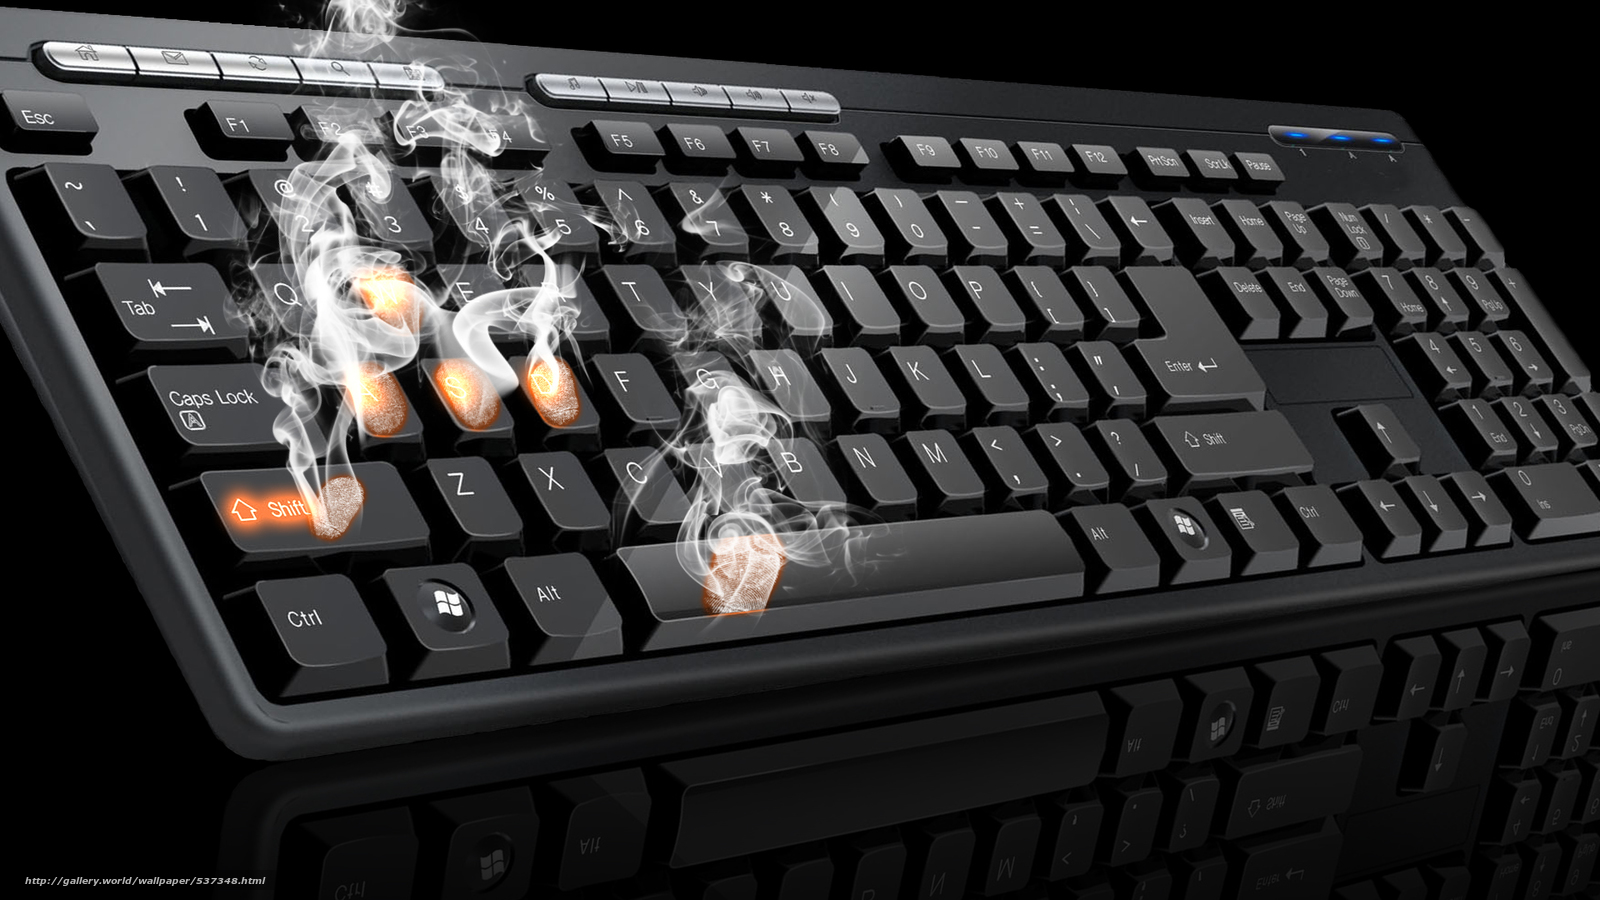 wallpaper keyboard download